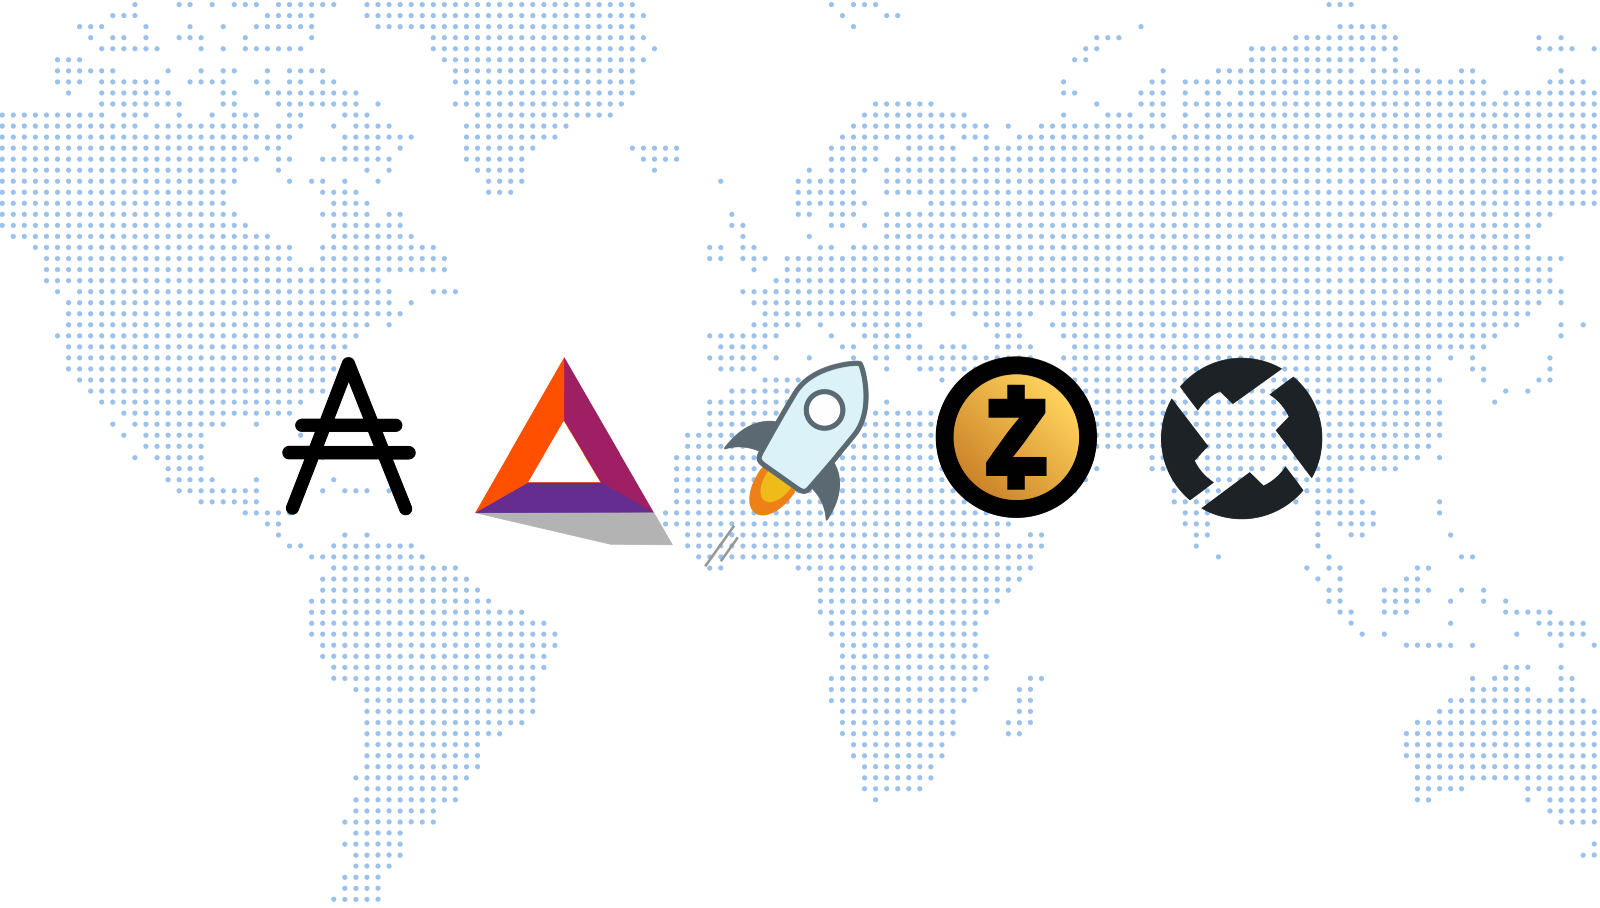 techcrunch.com - Lucas Matney - Coinbase teases several new cryptocurrency assets that it's 'exploring' support for